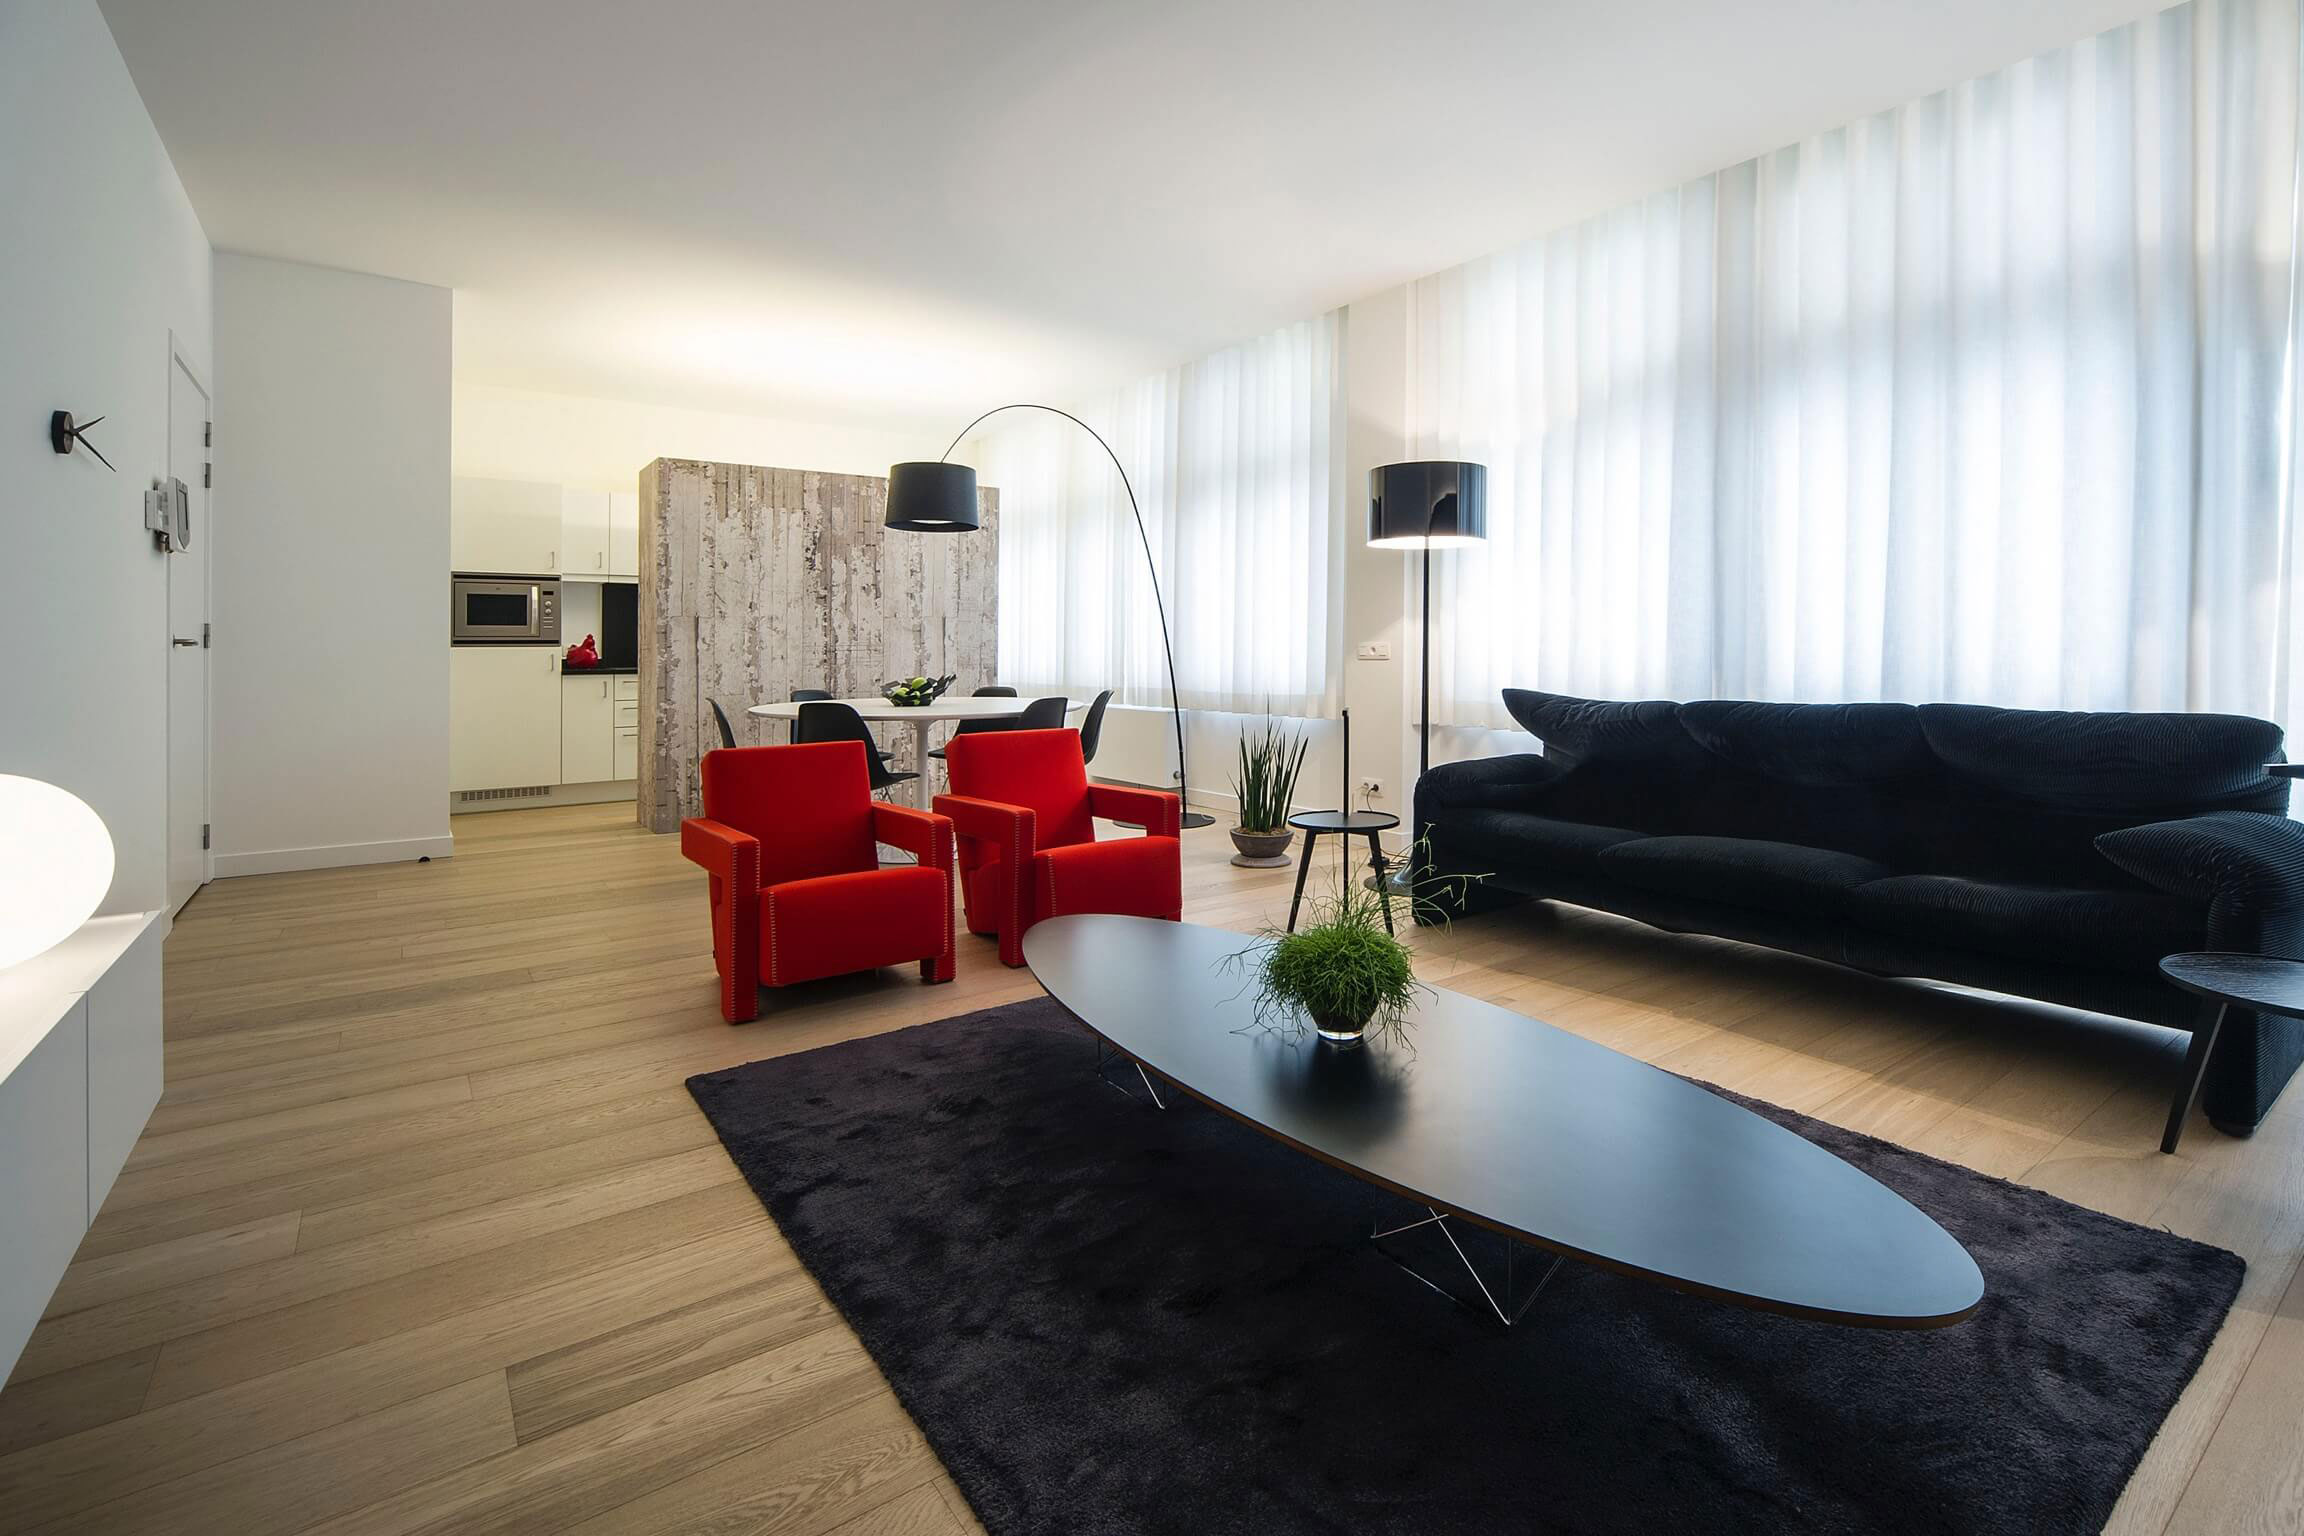 filip deslee designs a contemporary apartment in mortsel. Black Bedroom Furniture Sets. Home Design Ideas